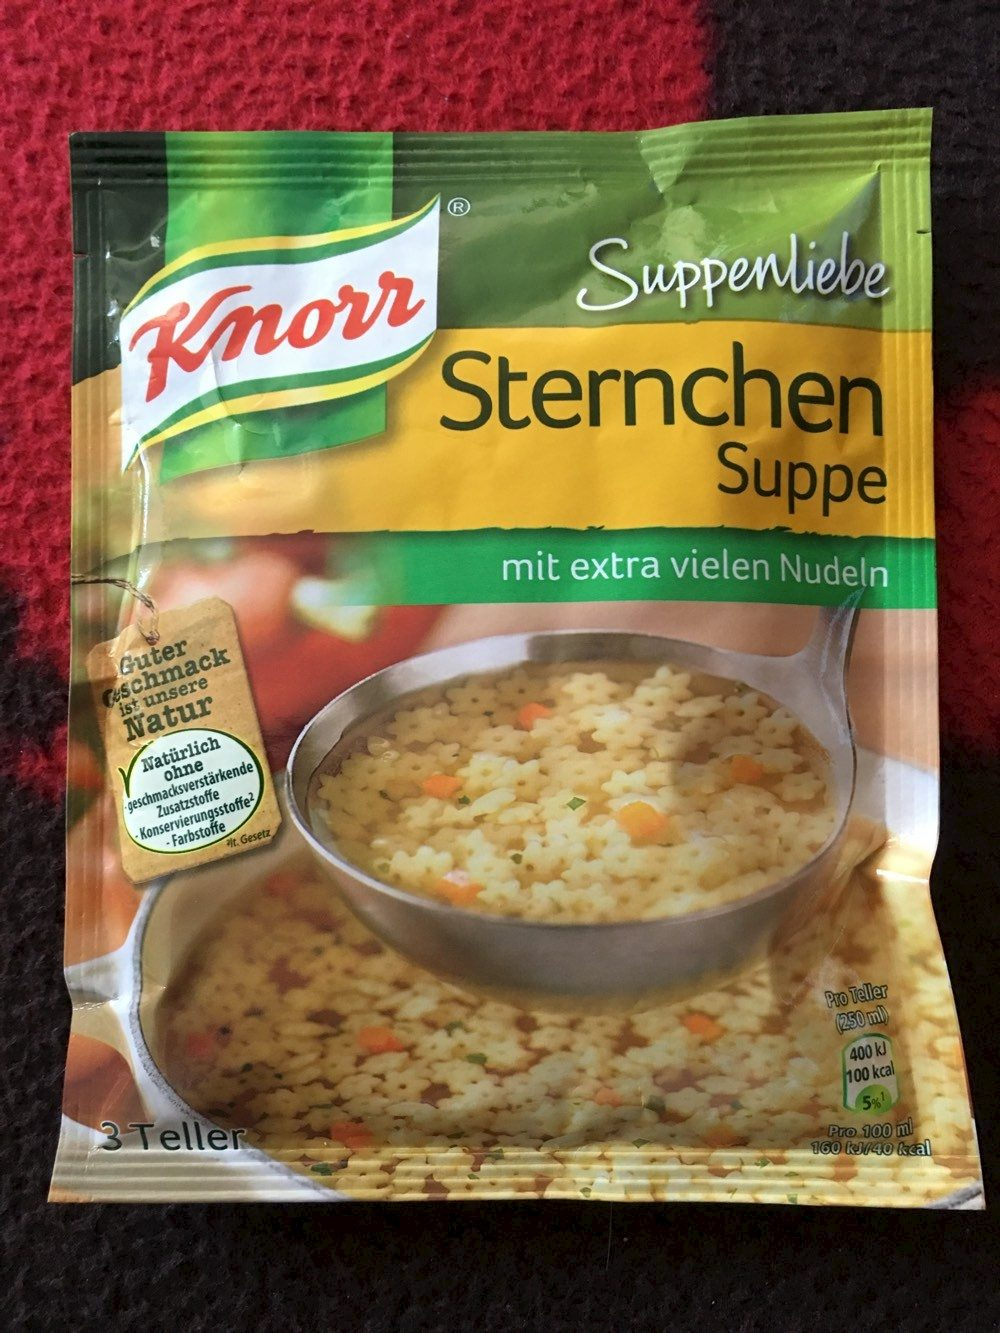 Sternchen Suppe - Knorr - Produit